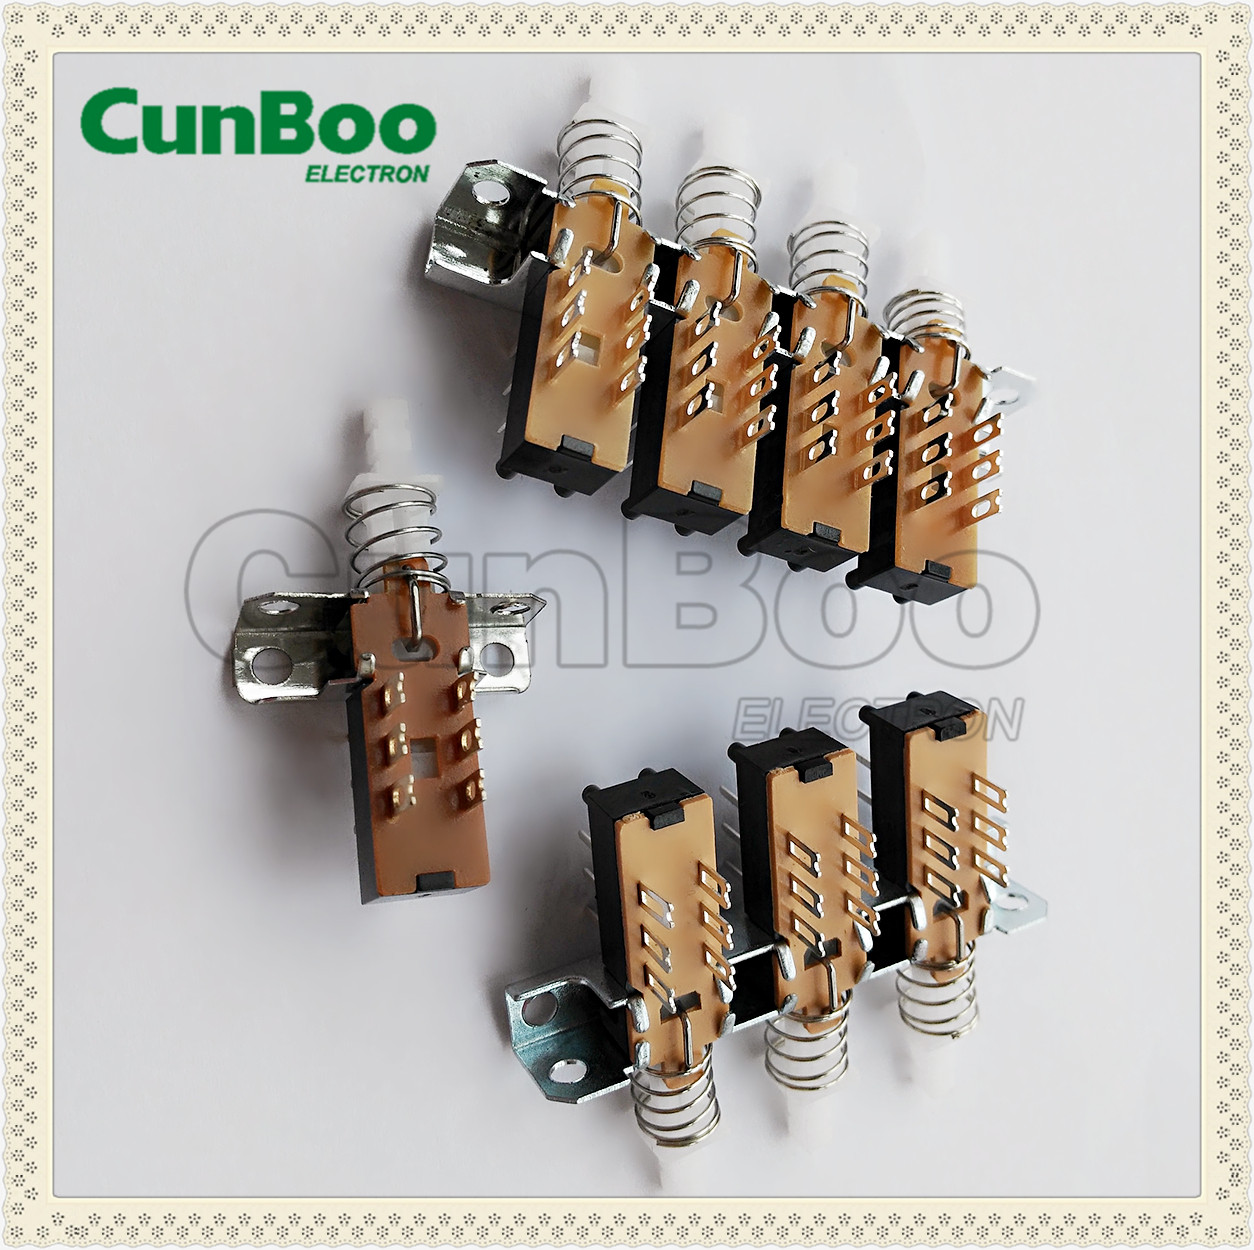 5 push switch connected with frame